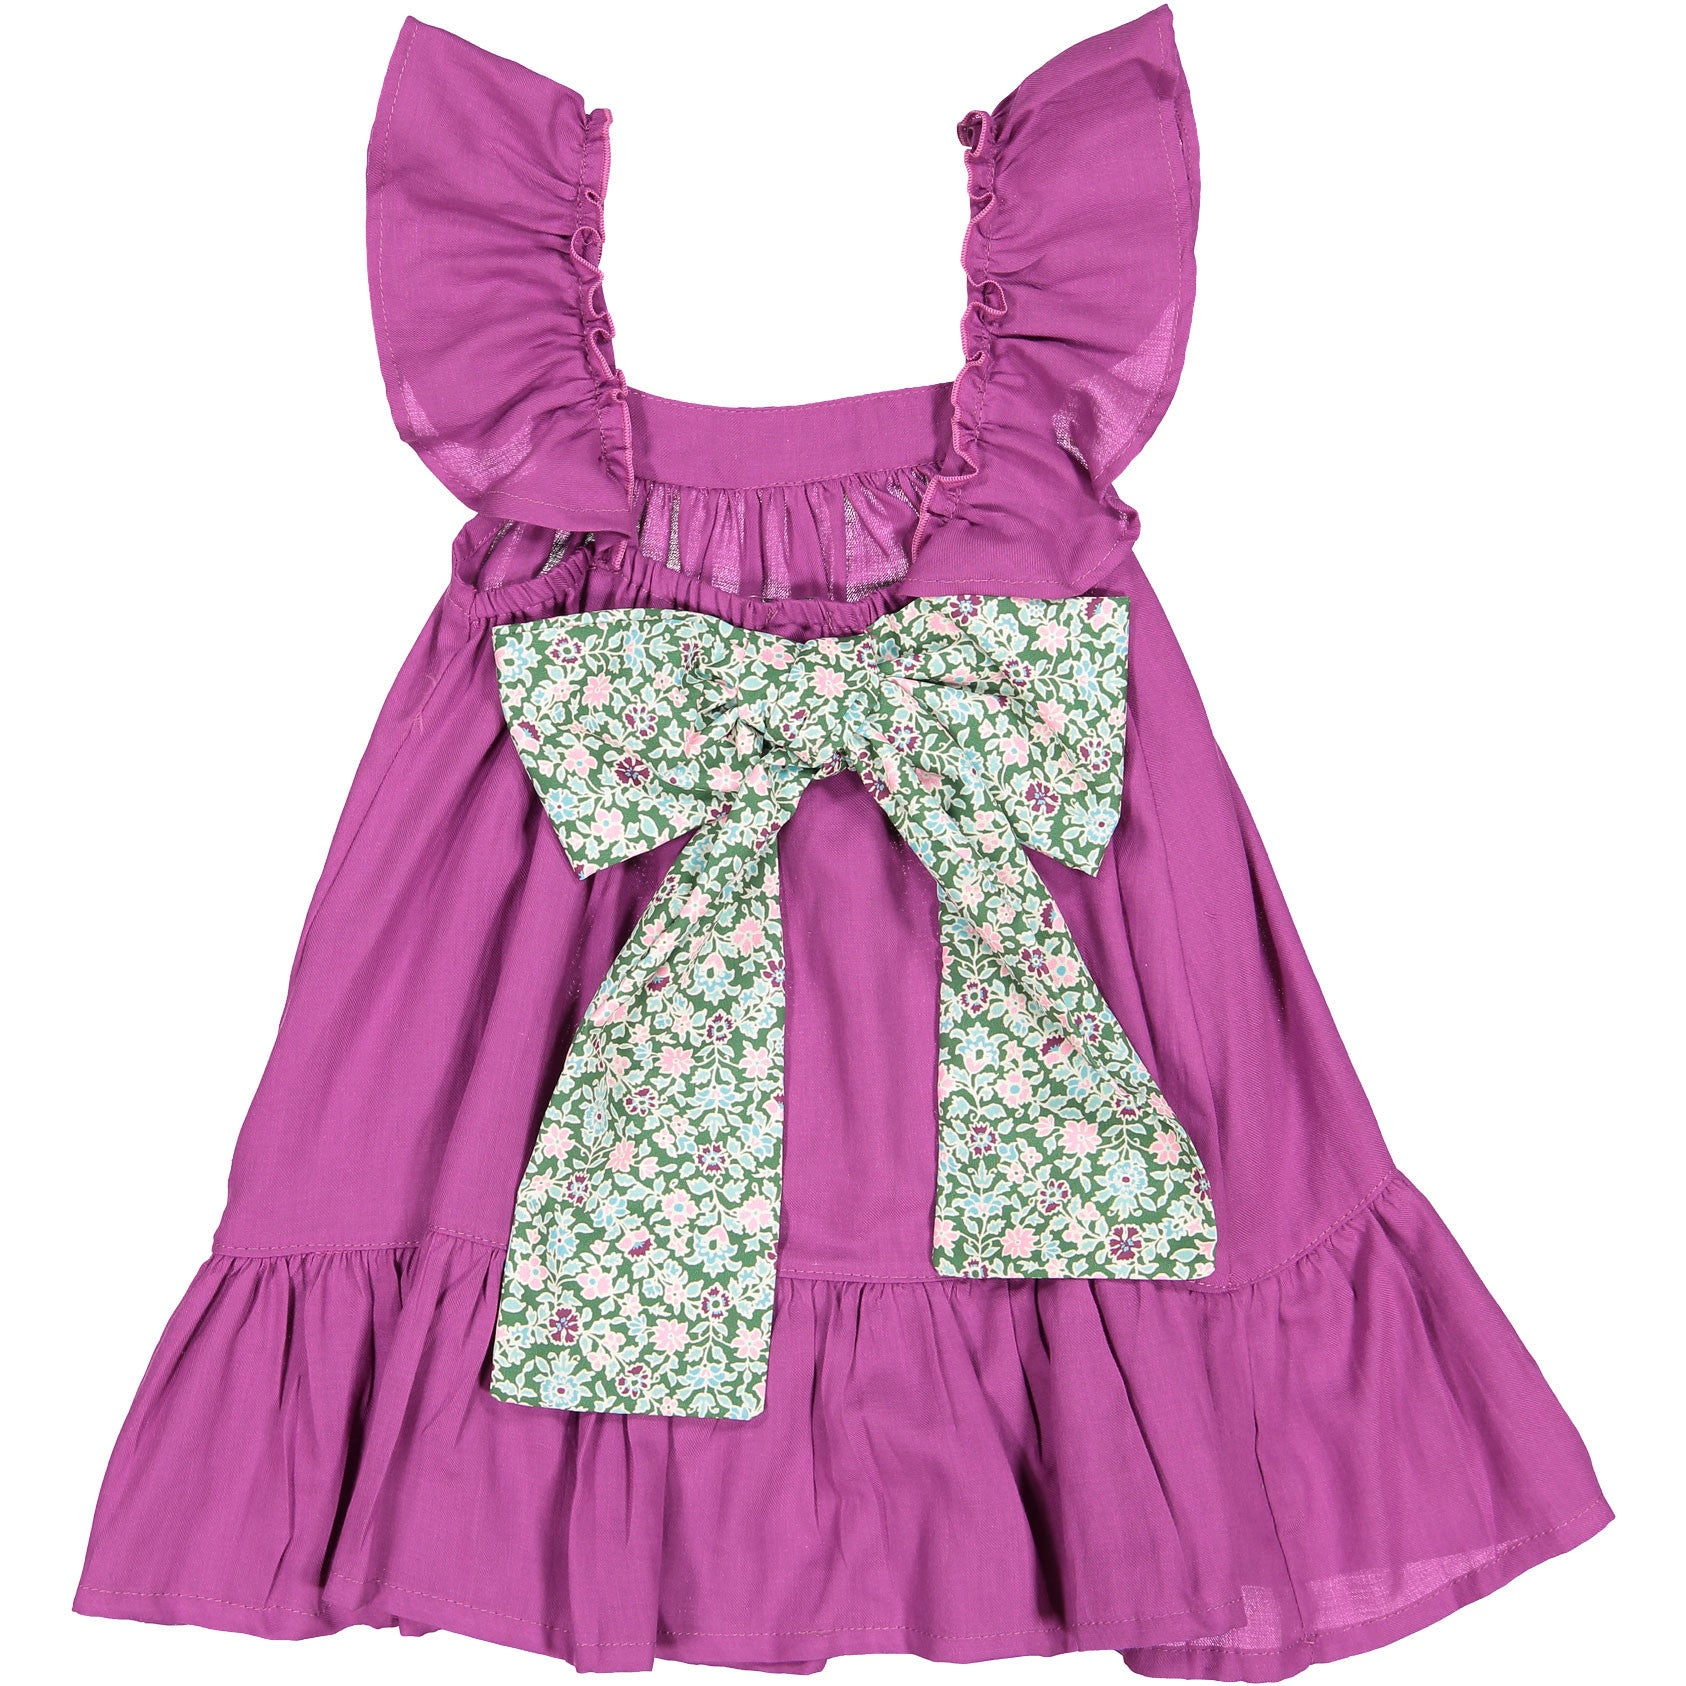 Nueces Purple Floral Dress - Ladida